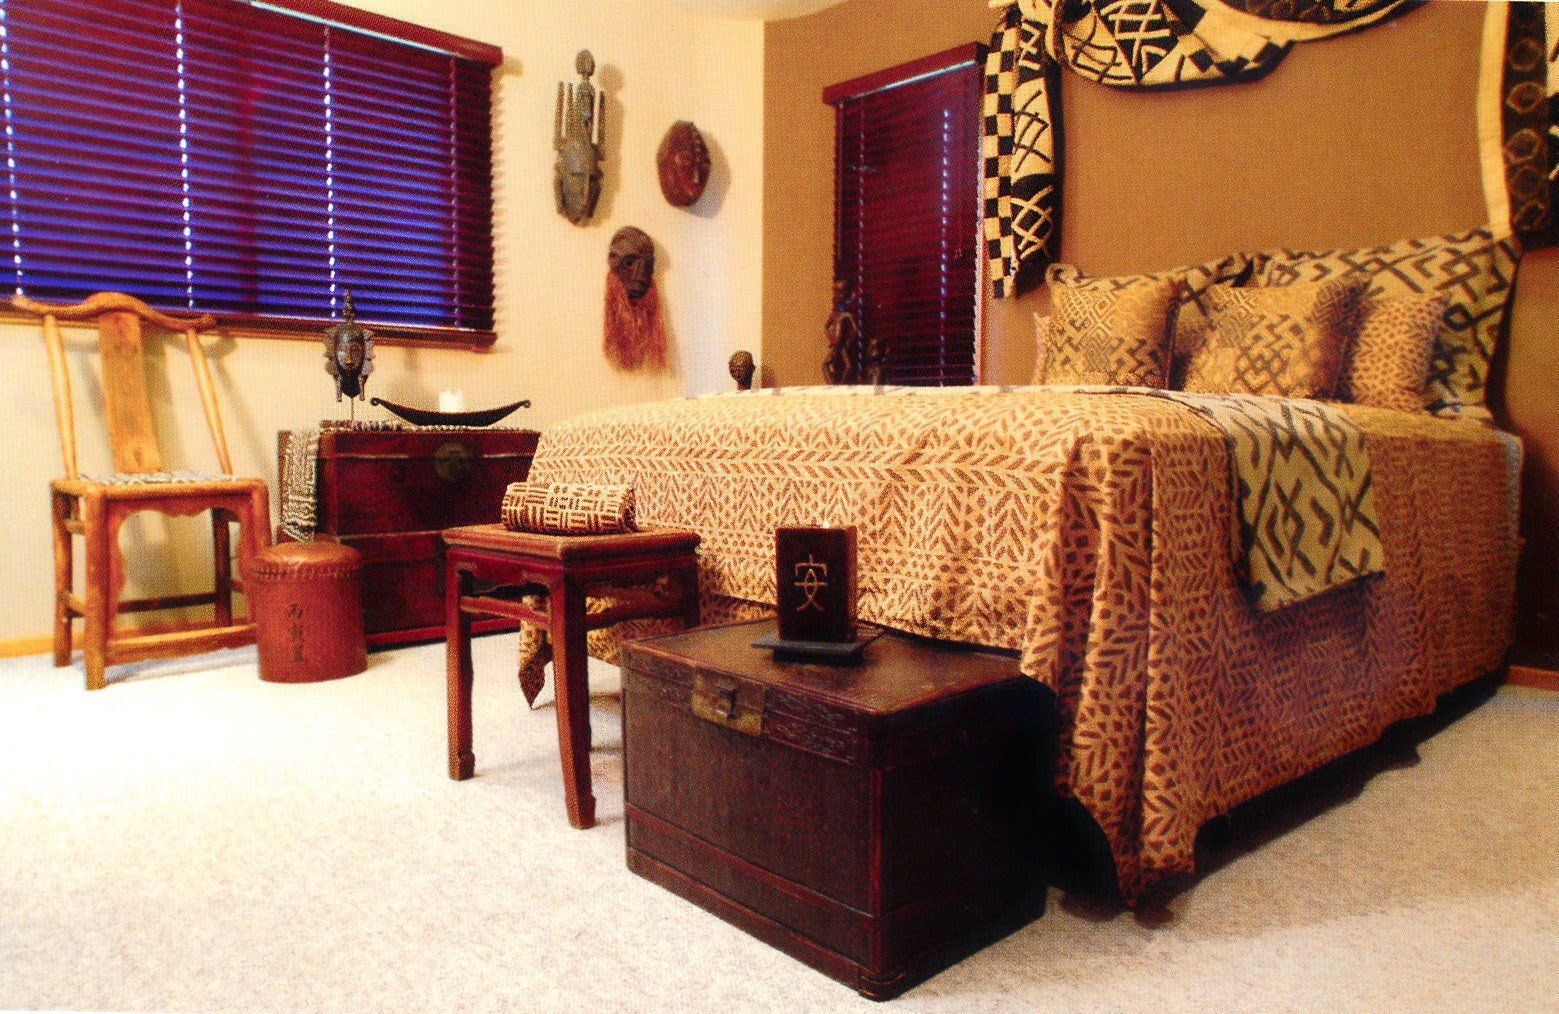 Foundation dezin decor bedroom design in african way for Design and deco